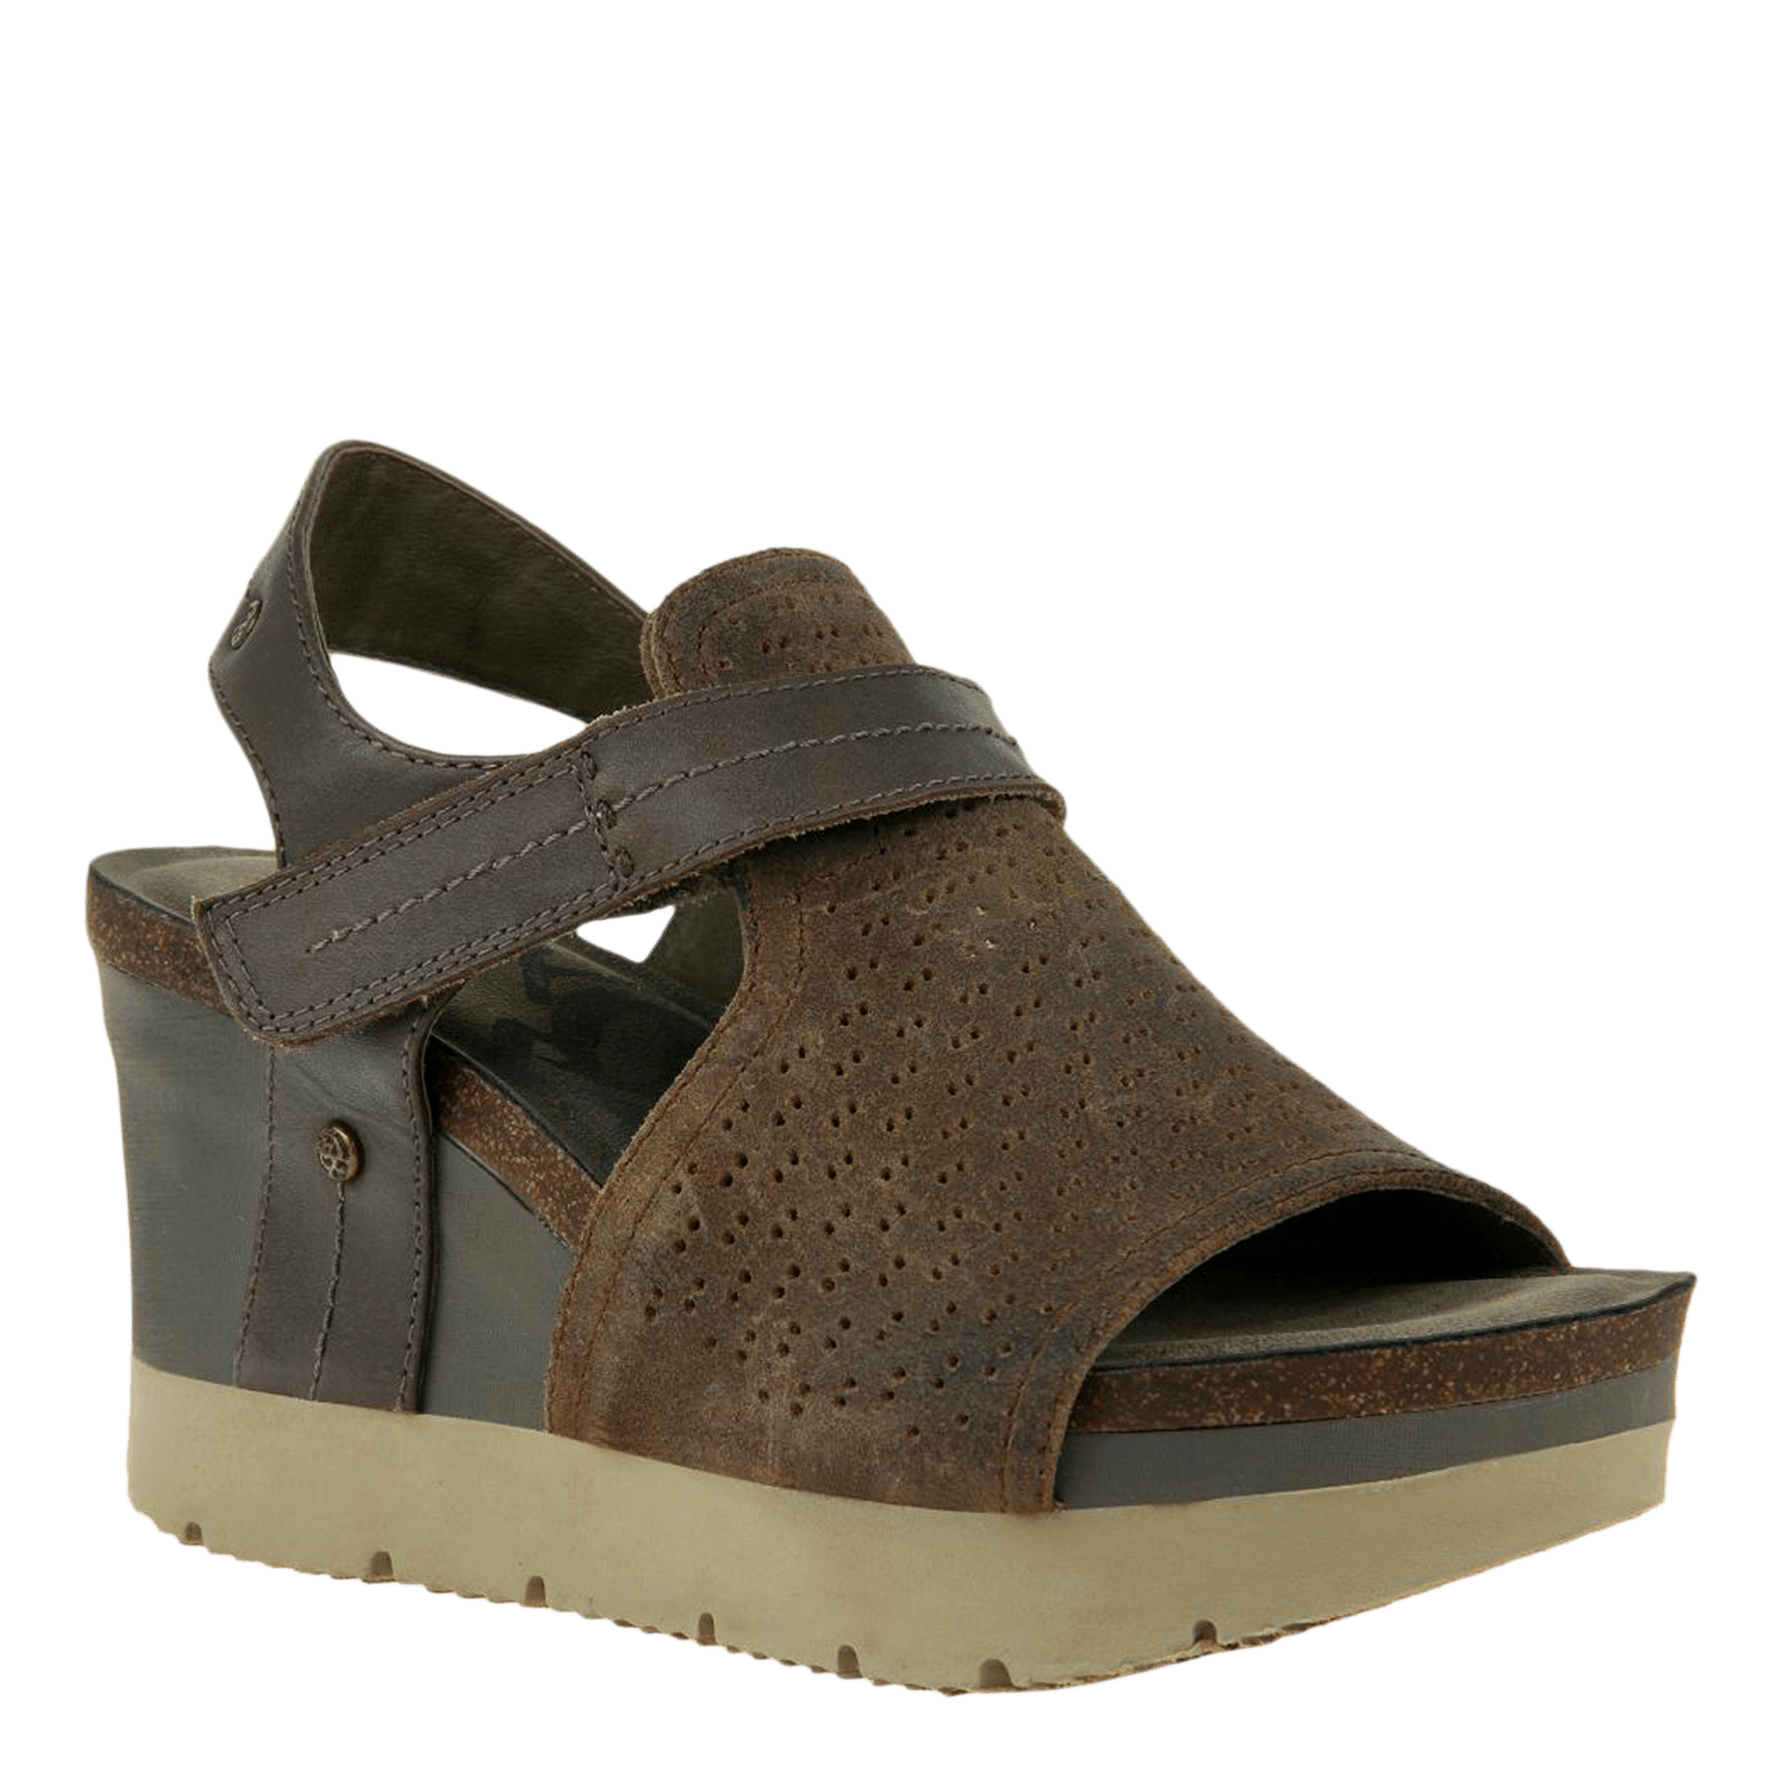 OTBT Womens Wedge Sandal Waypoint in mint